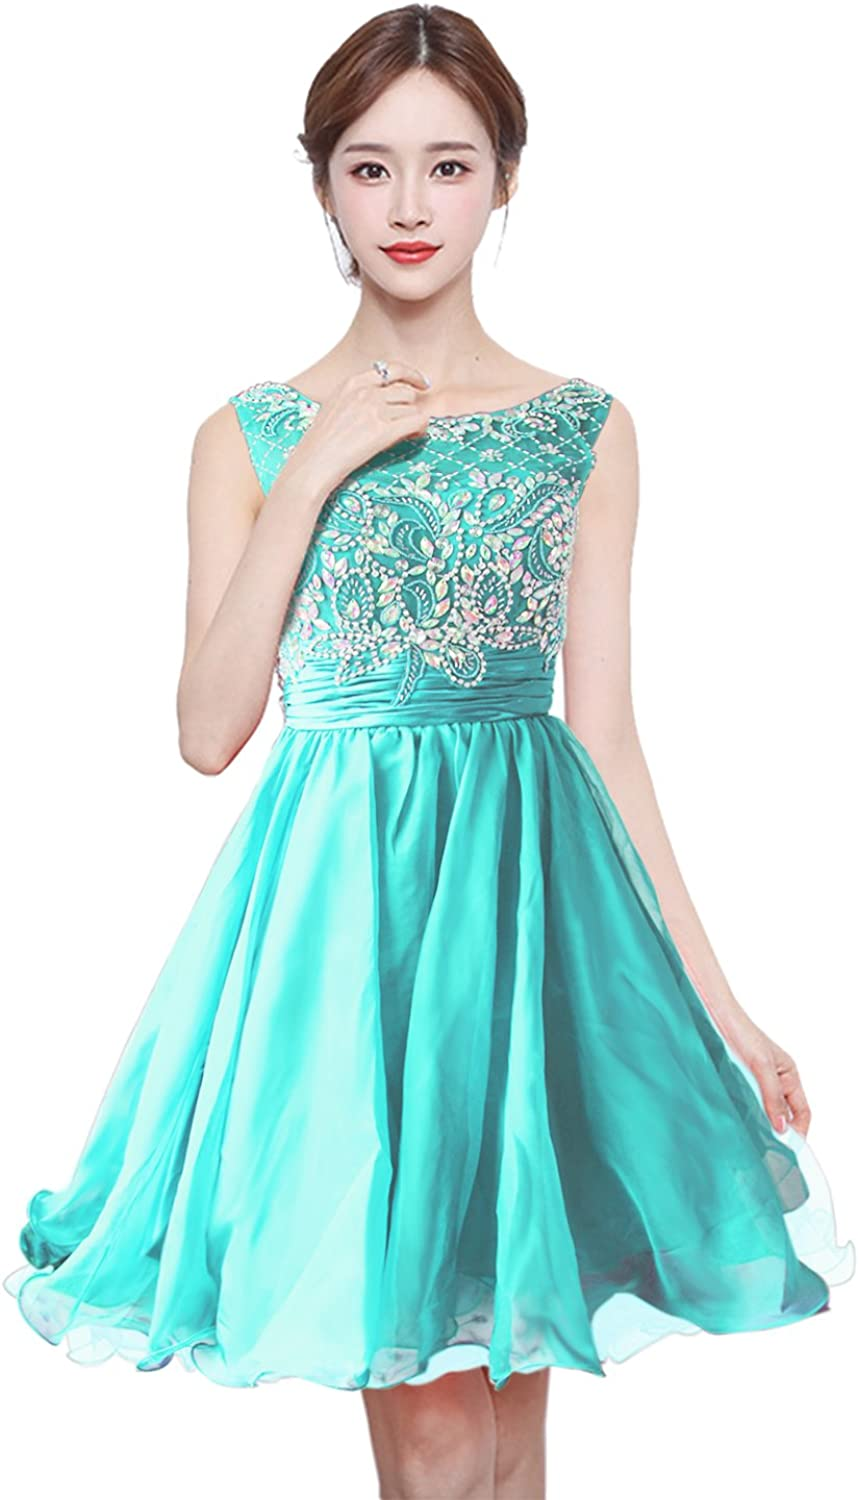 Anlin Short Prom Dresses Open Back Sequins Homecoming Dresses